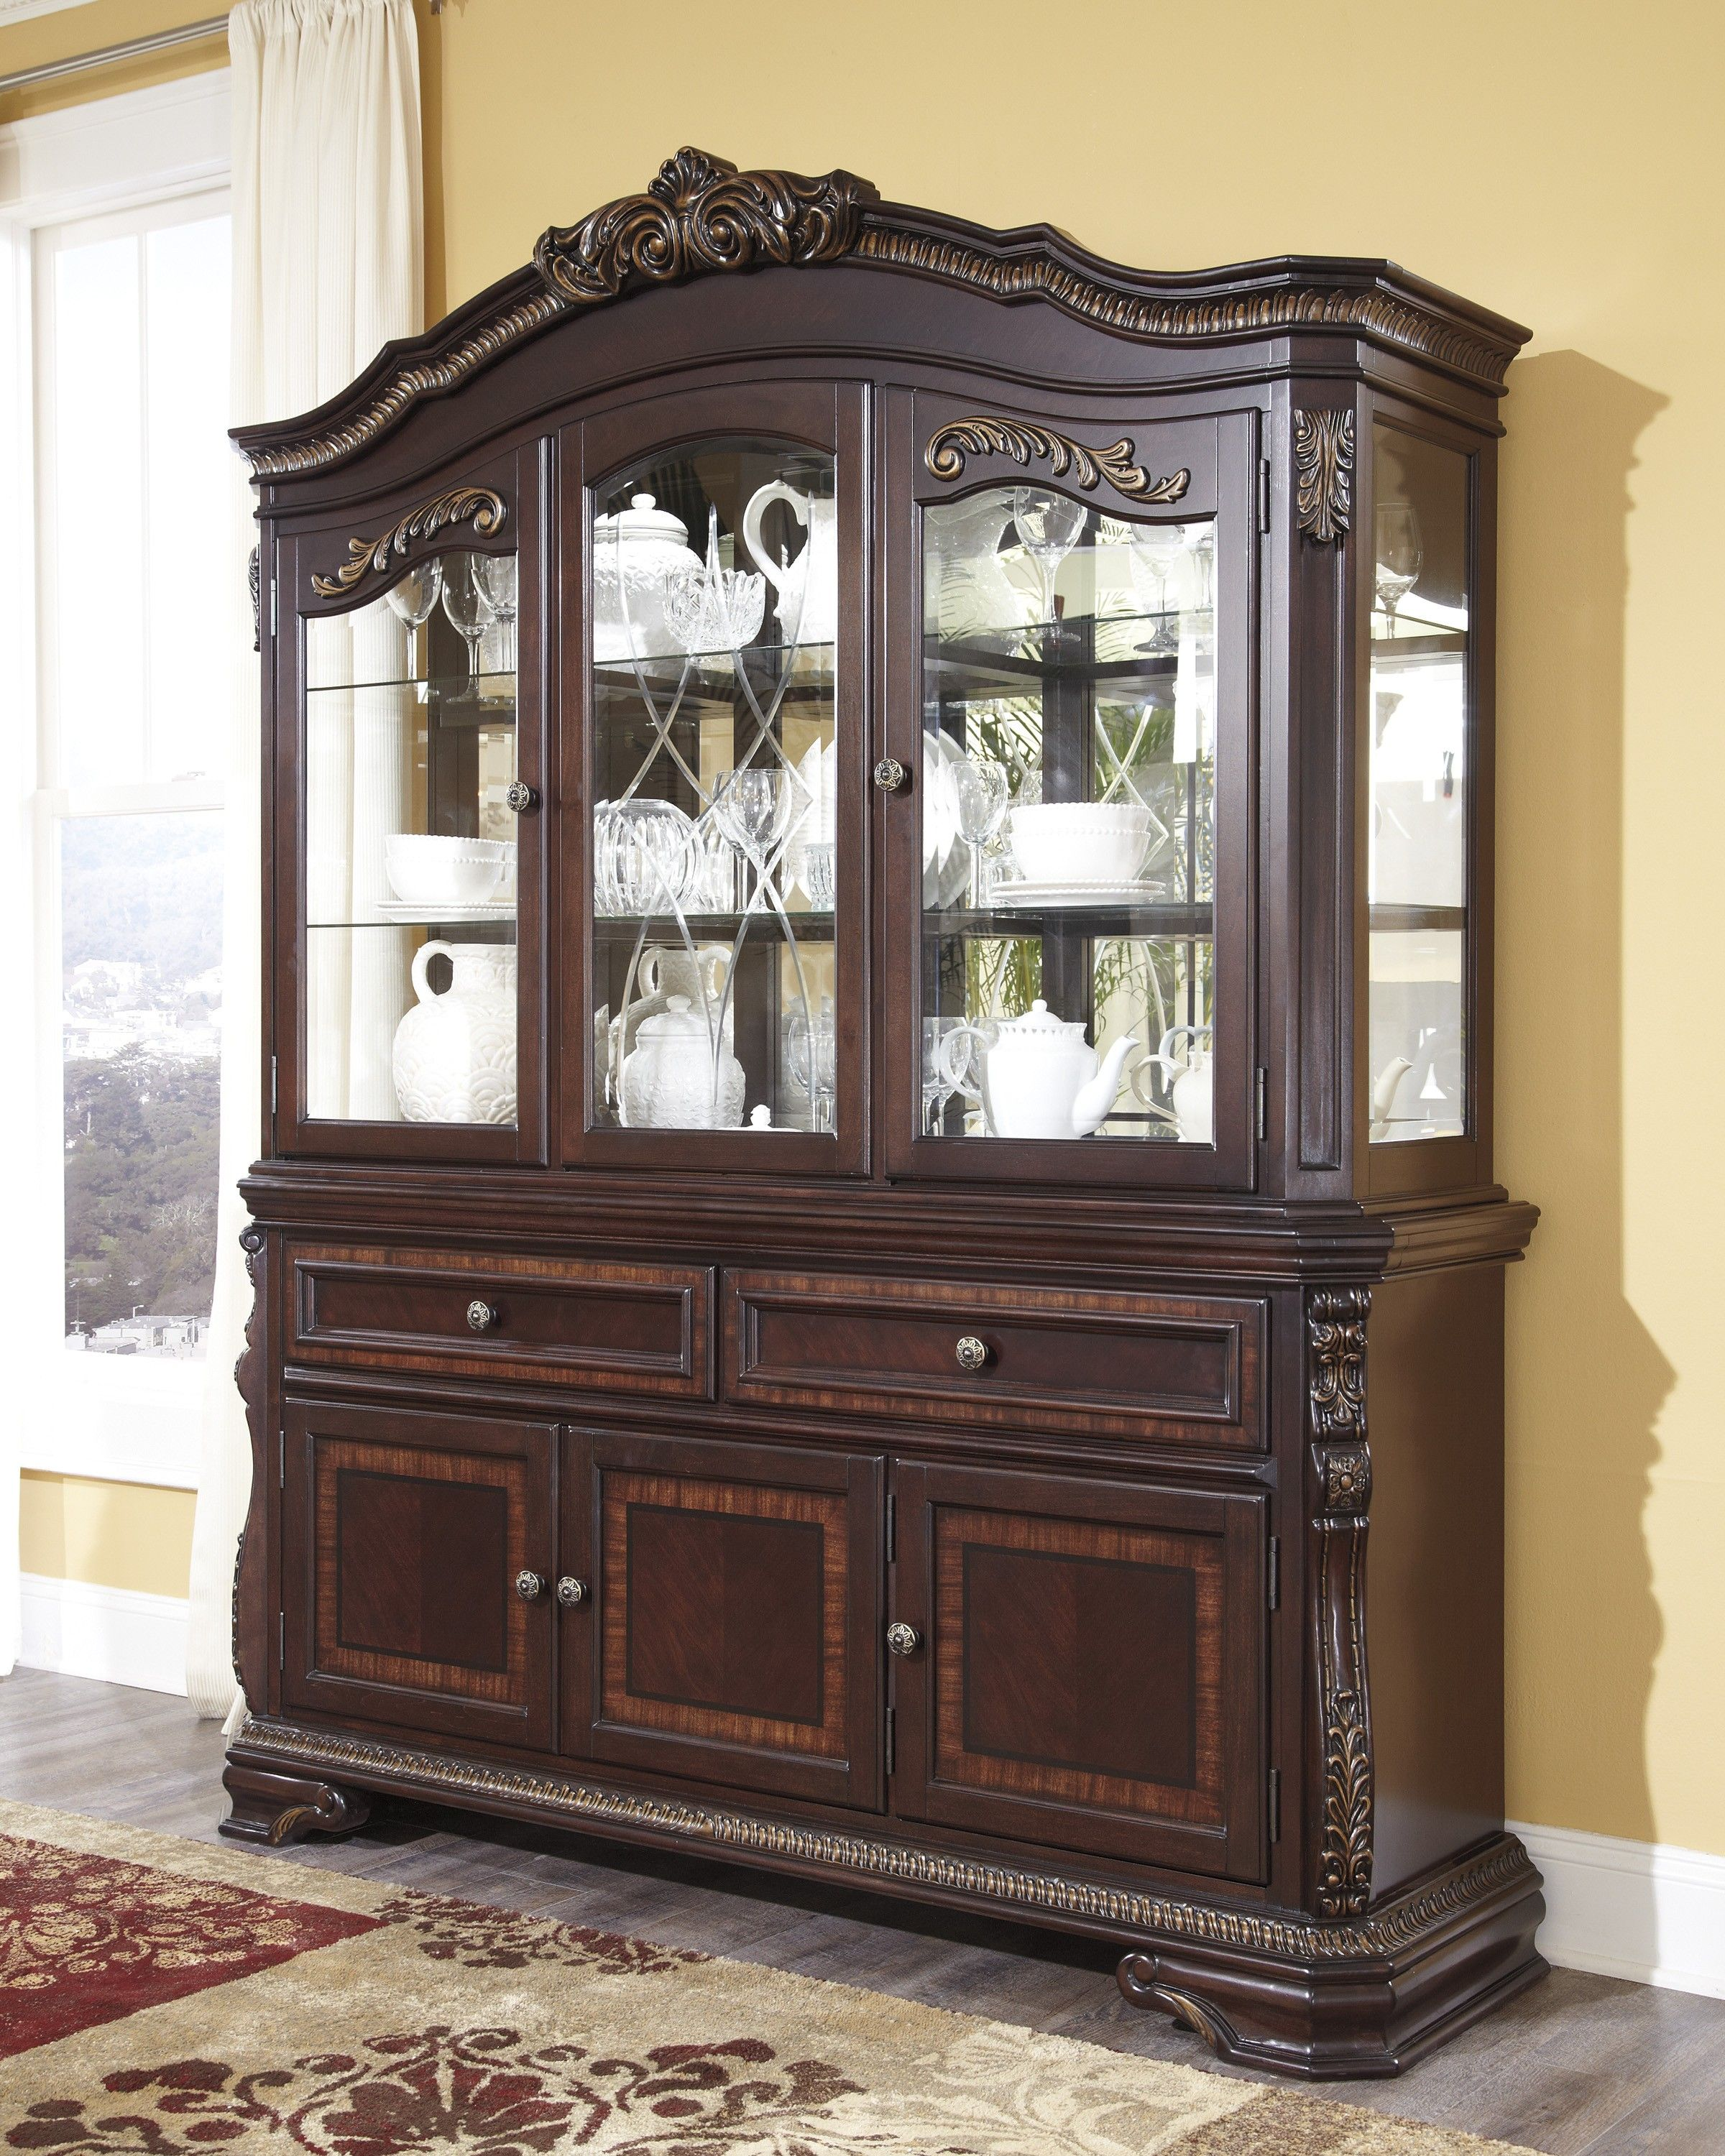 Dining Room Buffet With Hutch  Design Ideas 20172018  Pinterest Inspiration Dining Room Buffet Hutch Inspiration Design